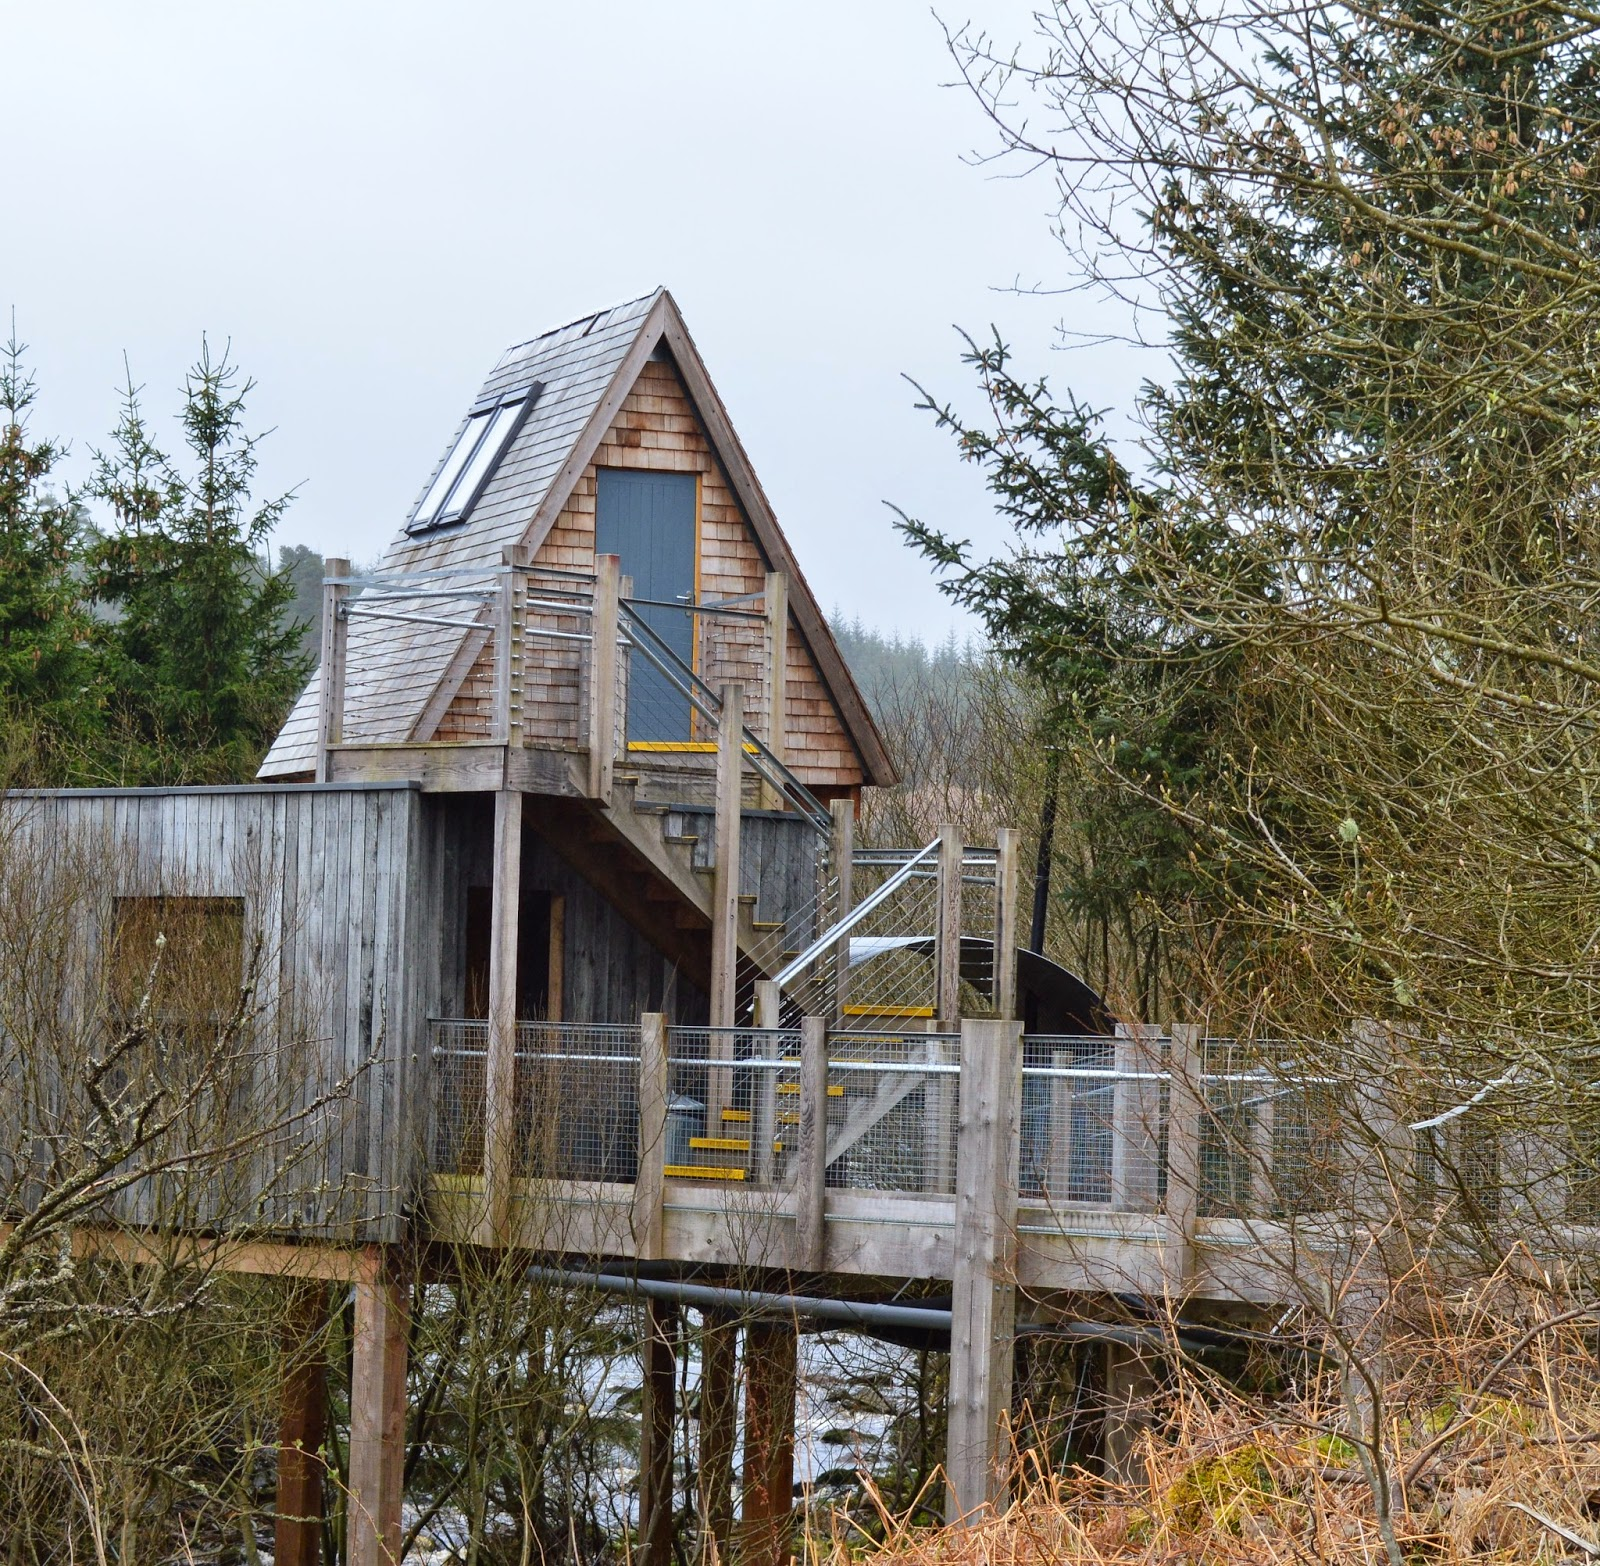 5 unique places to celebrate your wedding anniversary in North East England | Sky Den Tree house Kielder